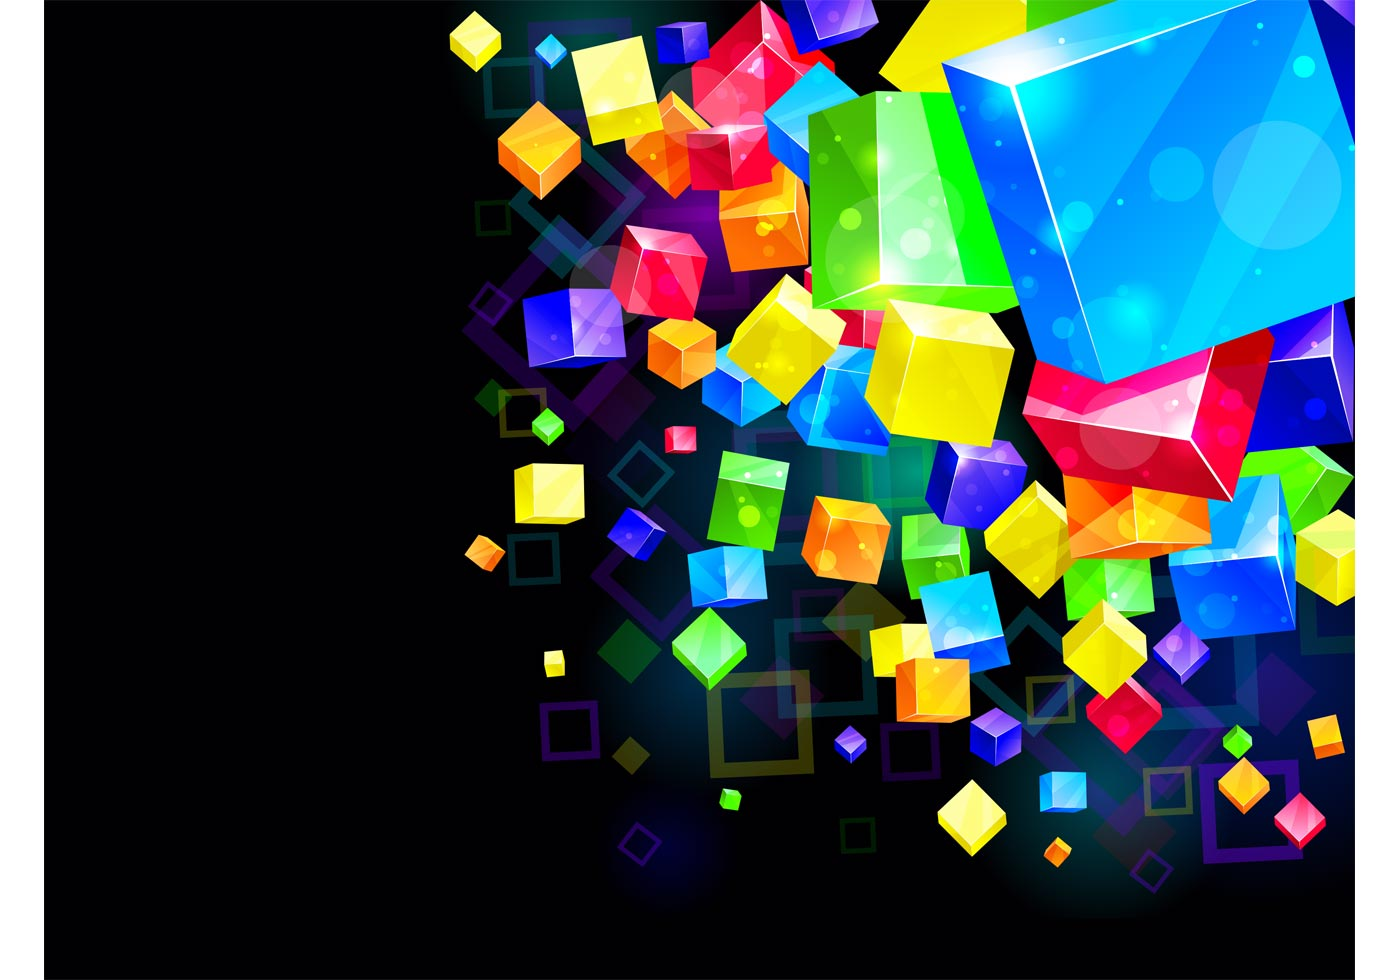 Cubes 3d Wallpaper Colorful Cubes Background Download Free Vector Art